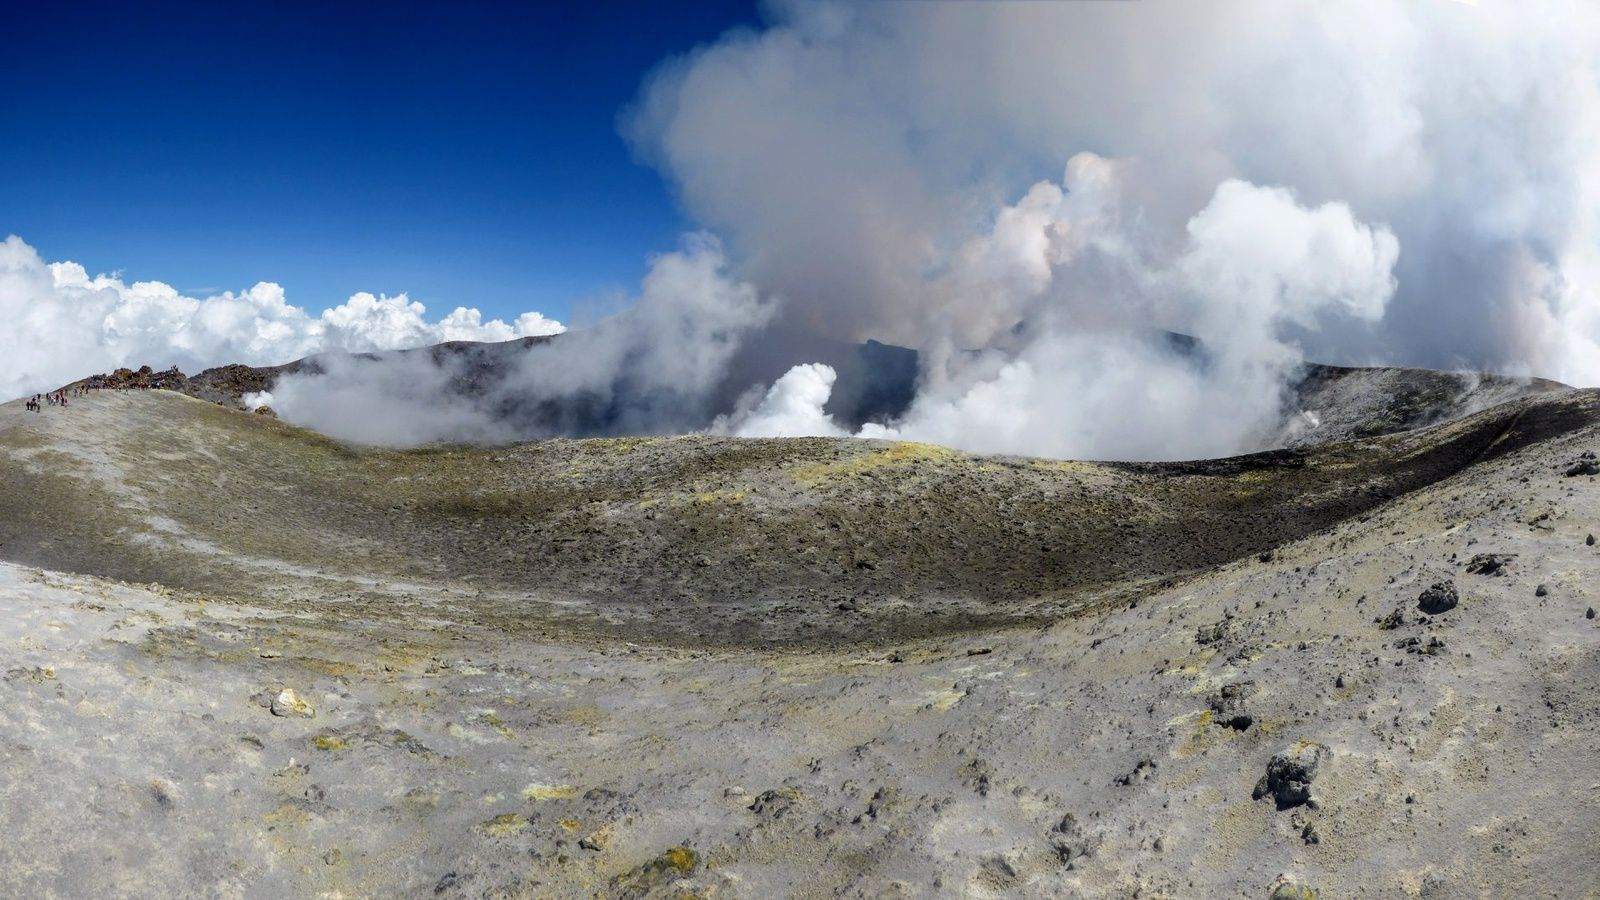 Etna - panoramic view of the summit crater of Bocca Nuova and view in the crater - photos 17 and 18.08.2018 / Gio Giusa